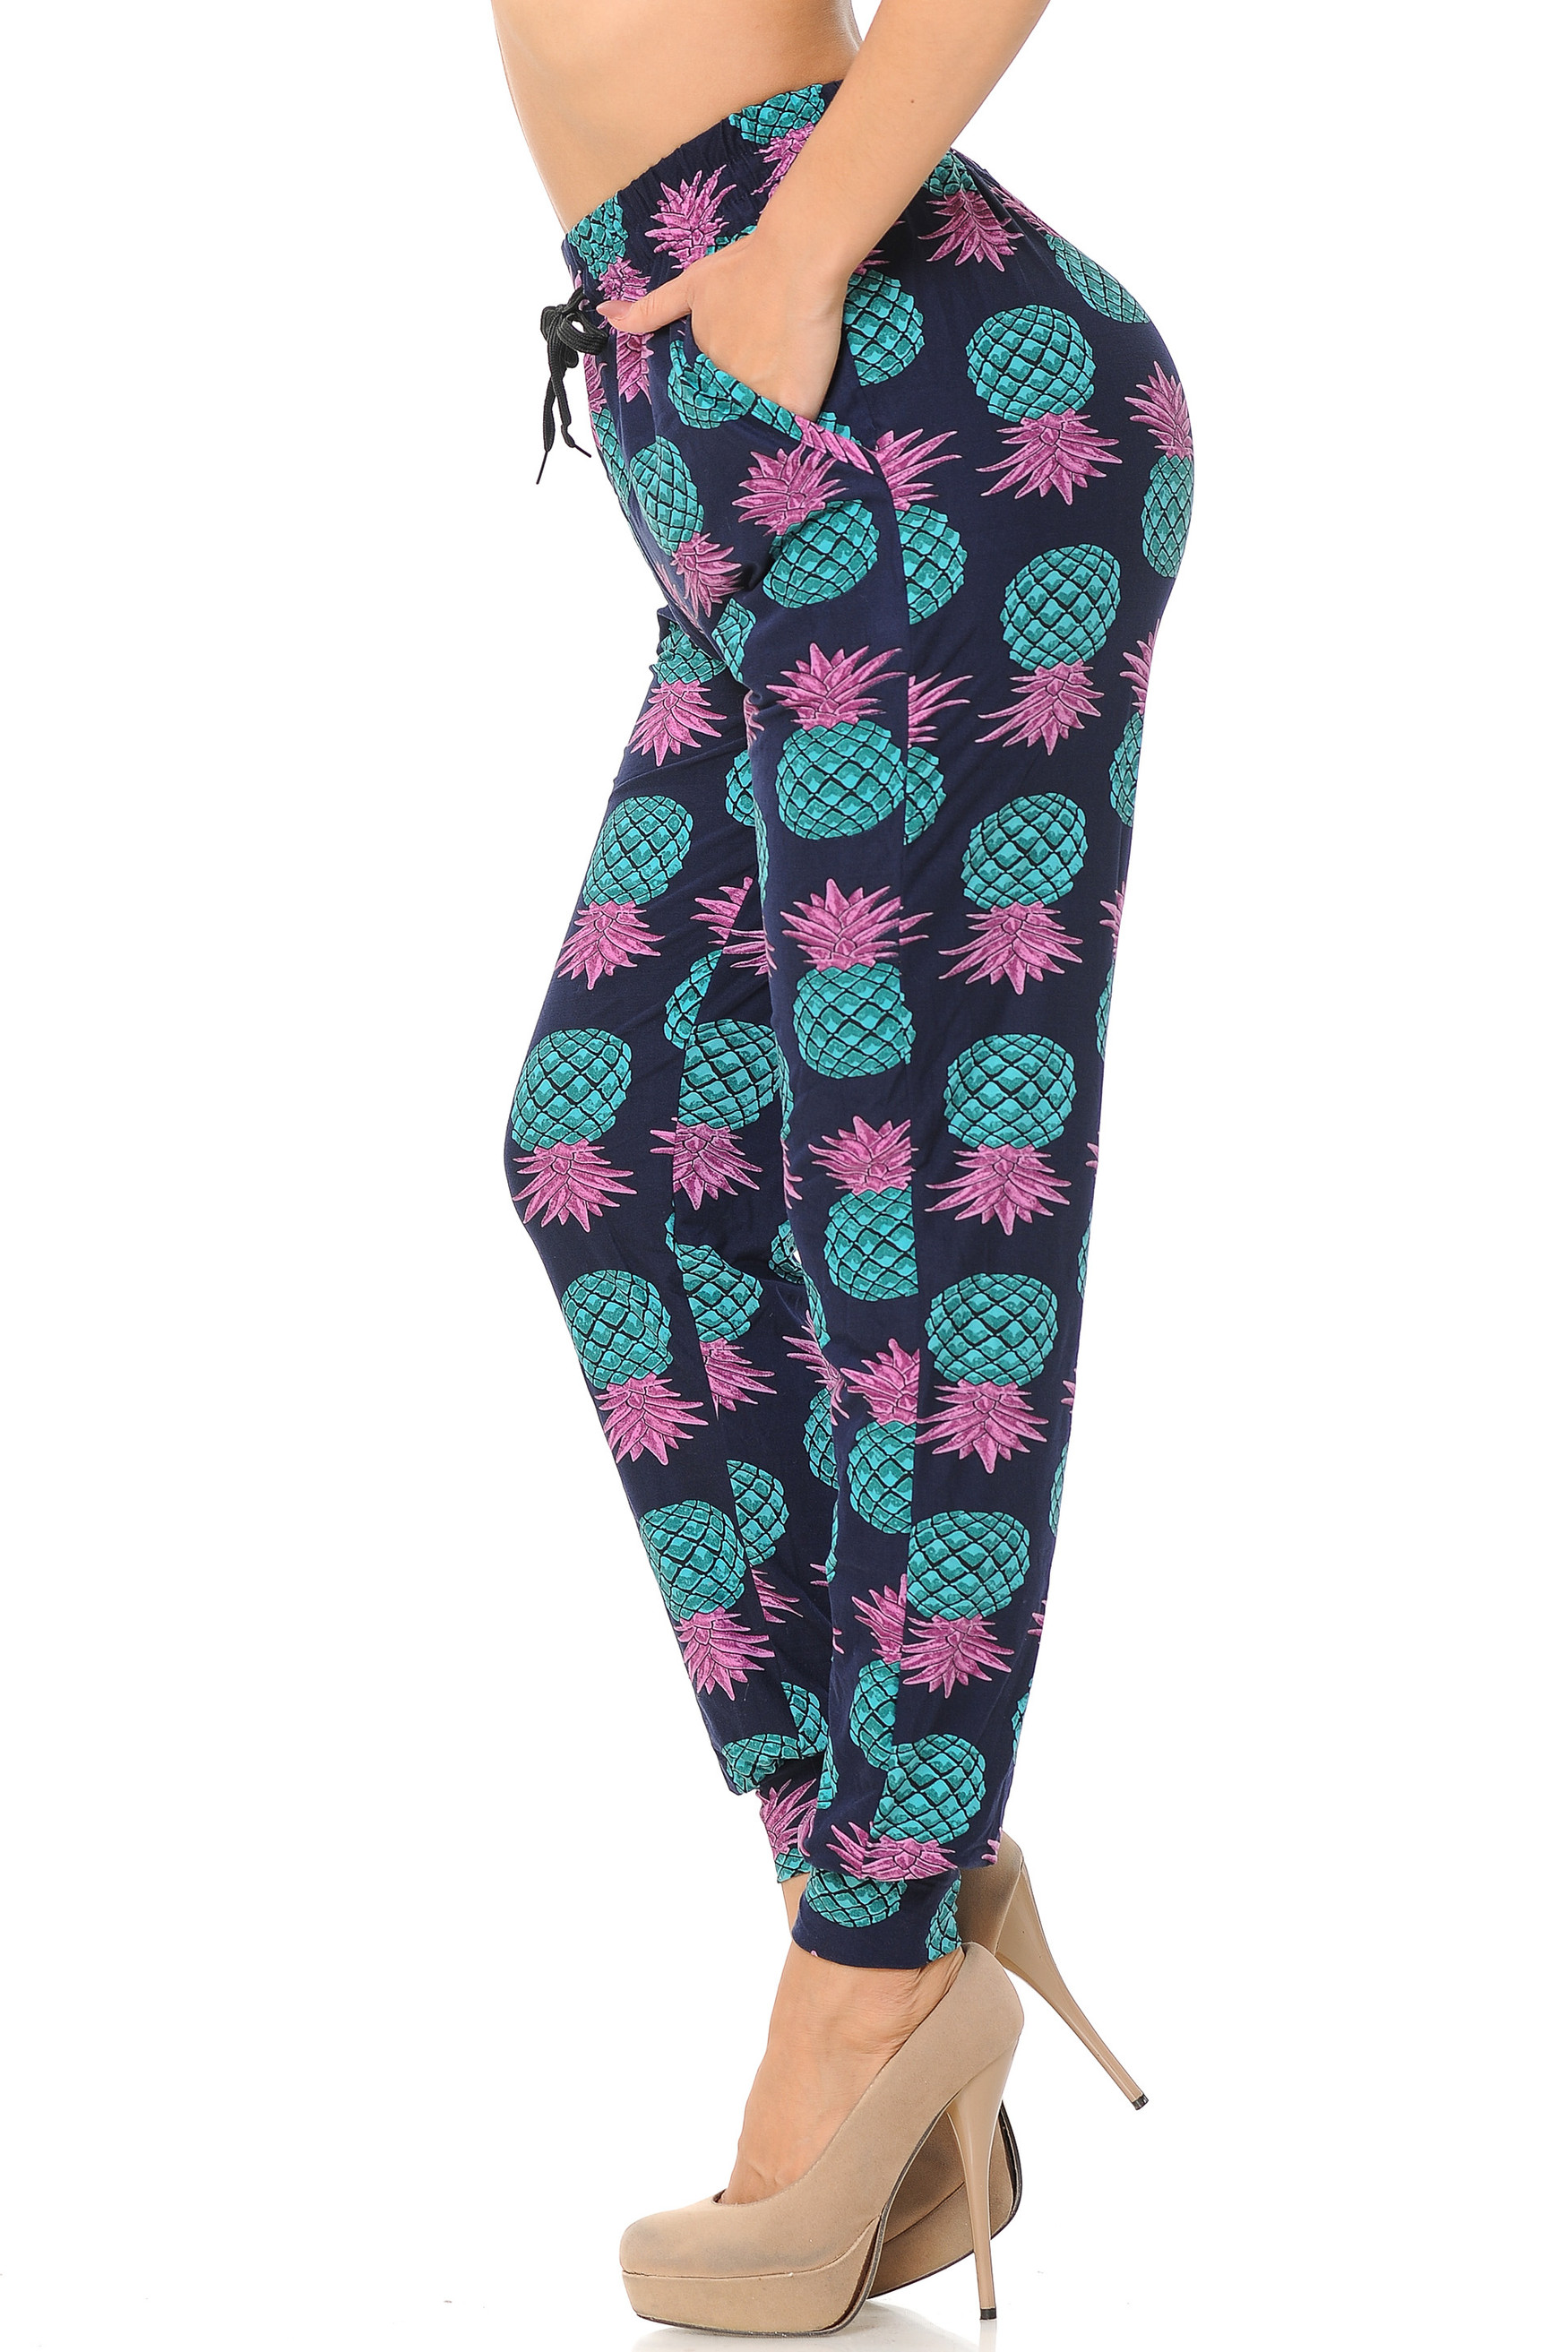 Brushed Teal Pineapple Women's Joggers